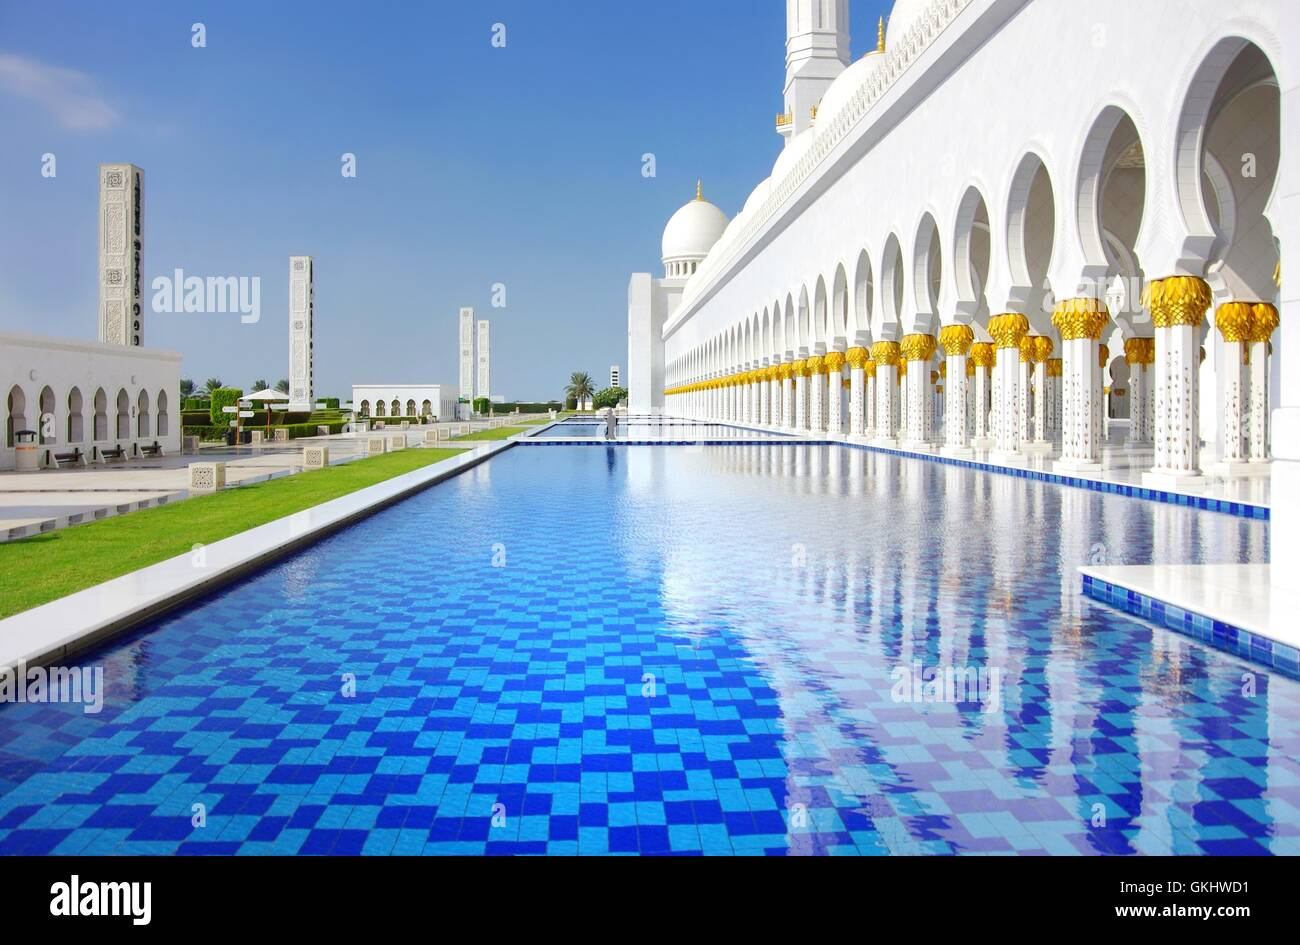 sheikh zahid mosque in abu dhabi Stock Photo